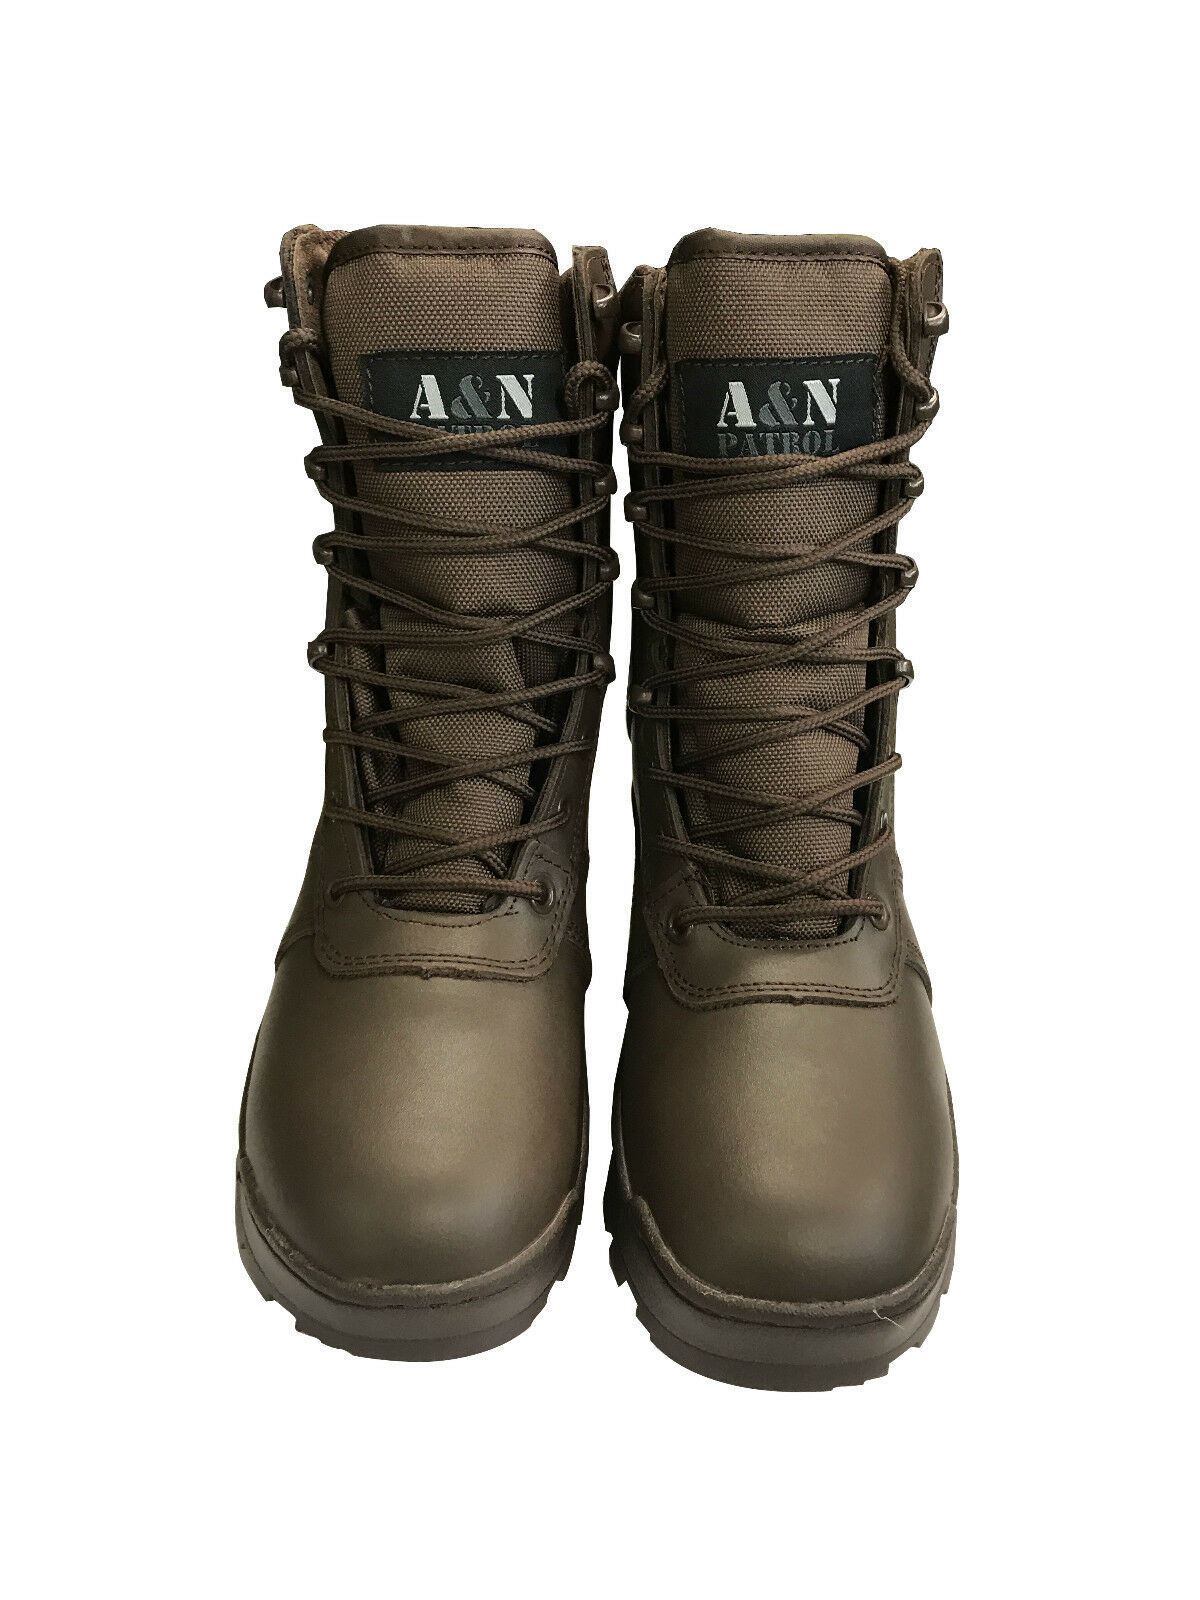 braun ALL LEATHER Cadet ATC Army Patrol Combat Stiefel Airsoft Airsoft Airsoft Tactical Military 329549